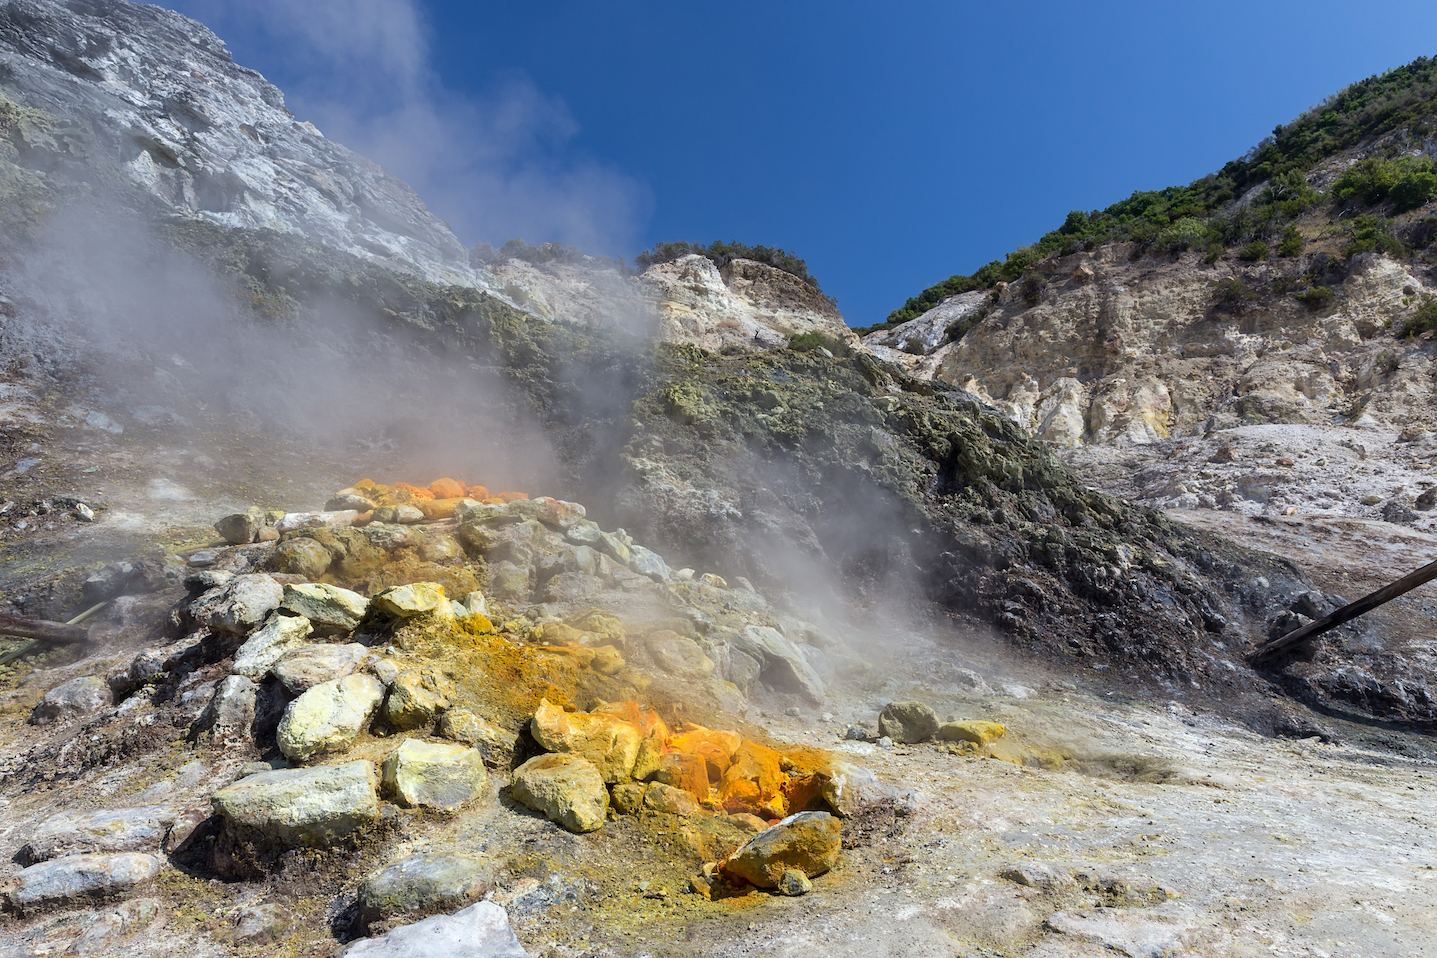 A new study from UCL suggests the next eruption of Campi Flegrei may occur sooner than previously thought.